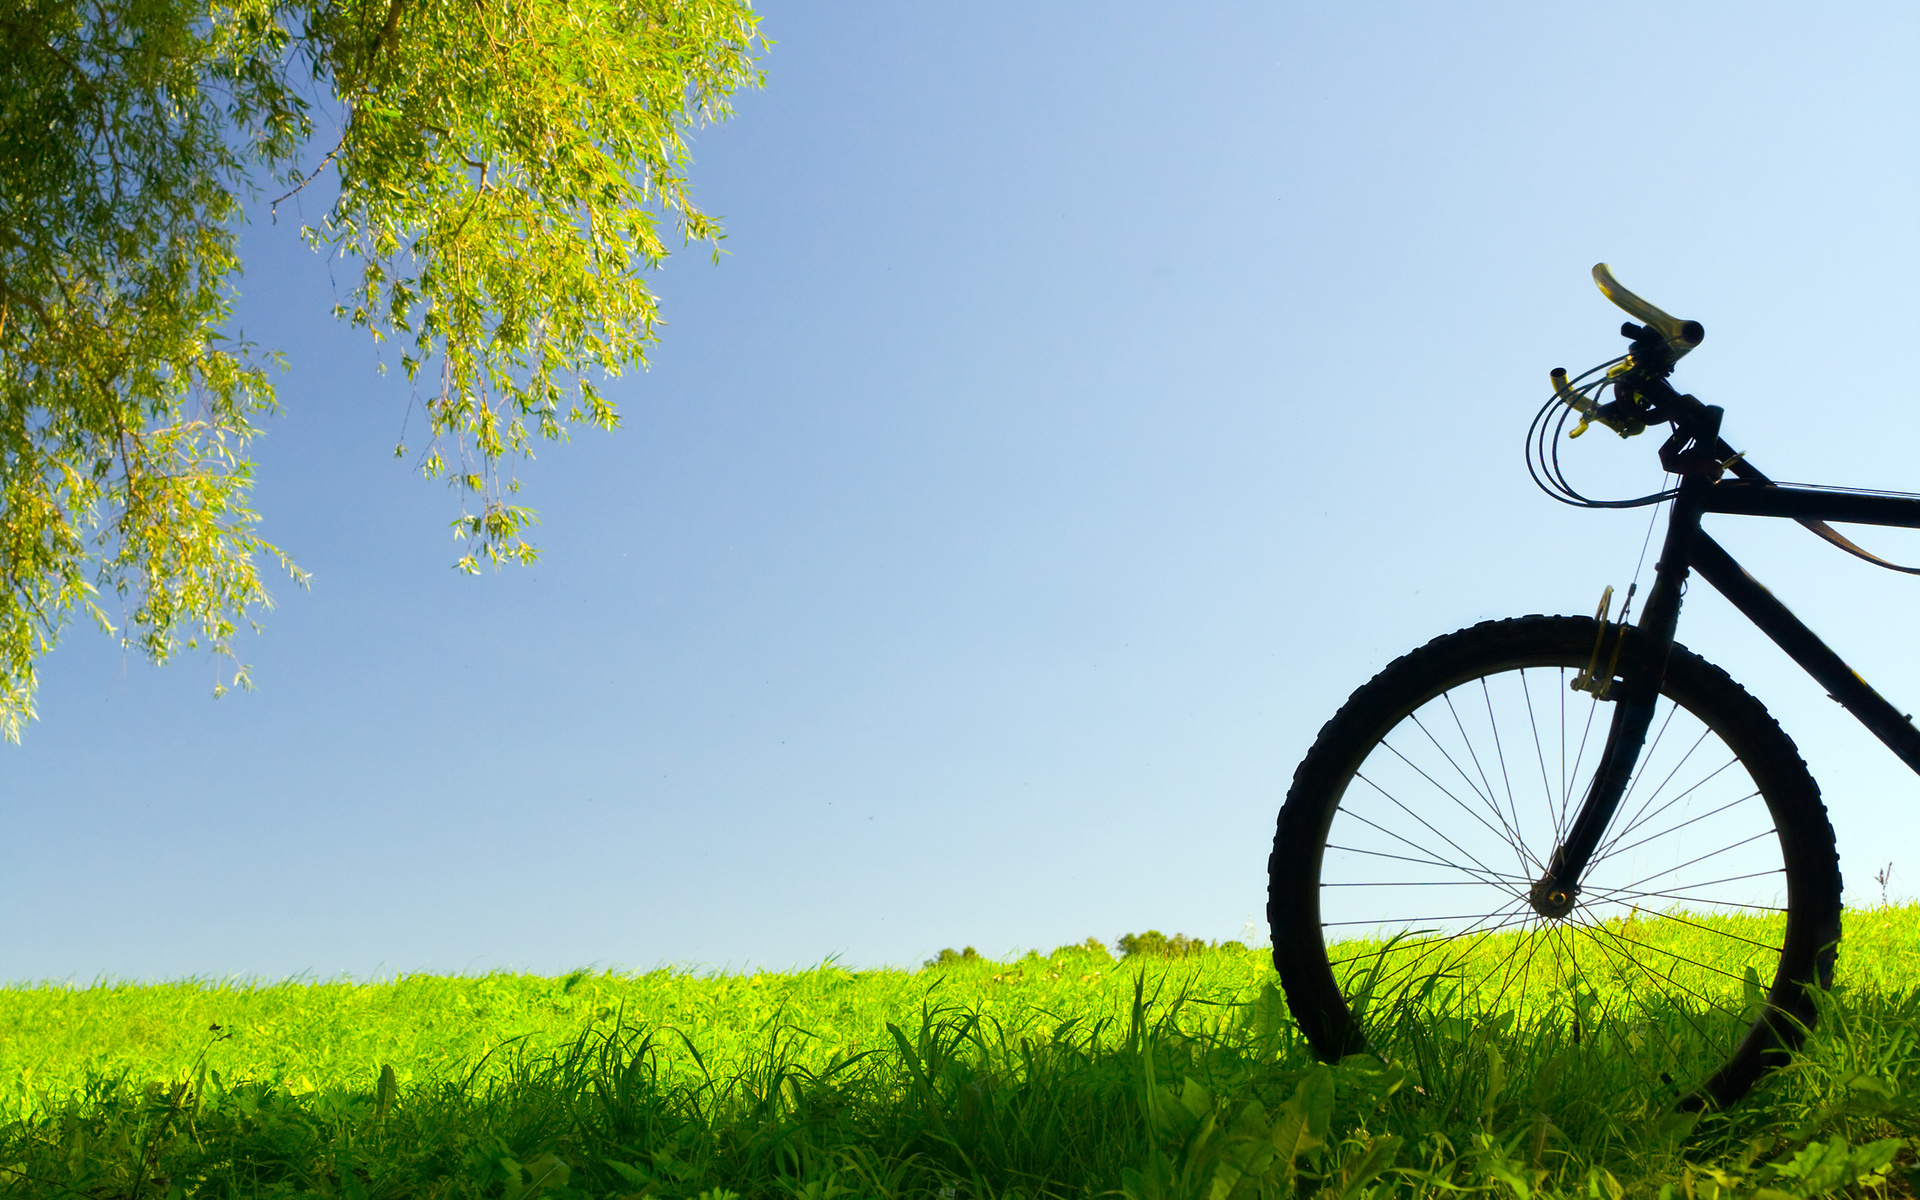 Bicycle Computer Wallpapers Desktop Backgrounds 1920x1200 ID 1920x1200